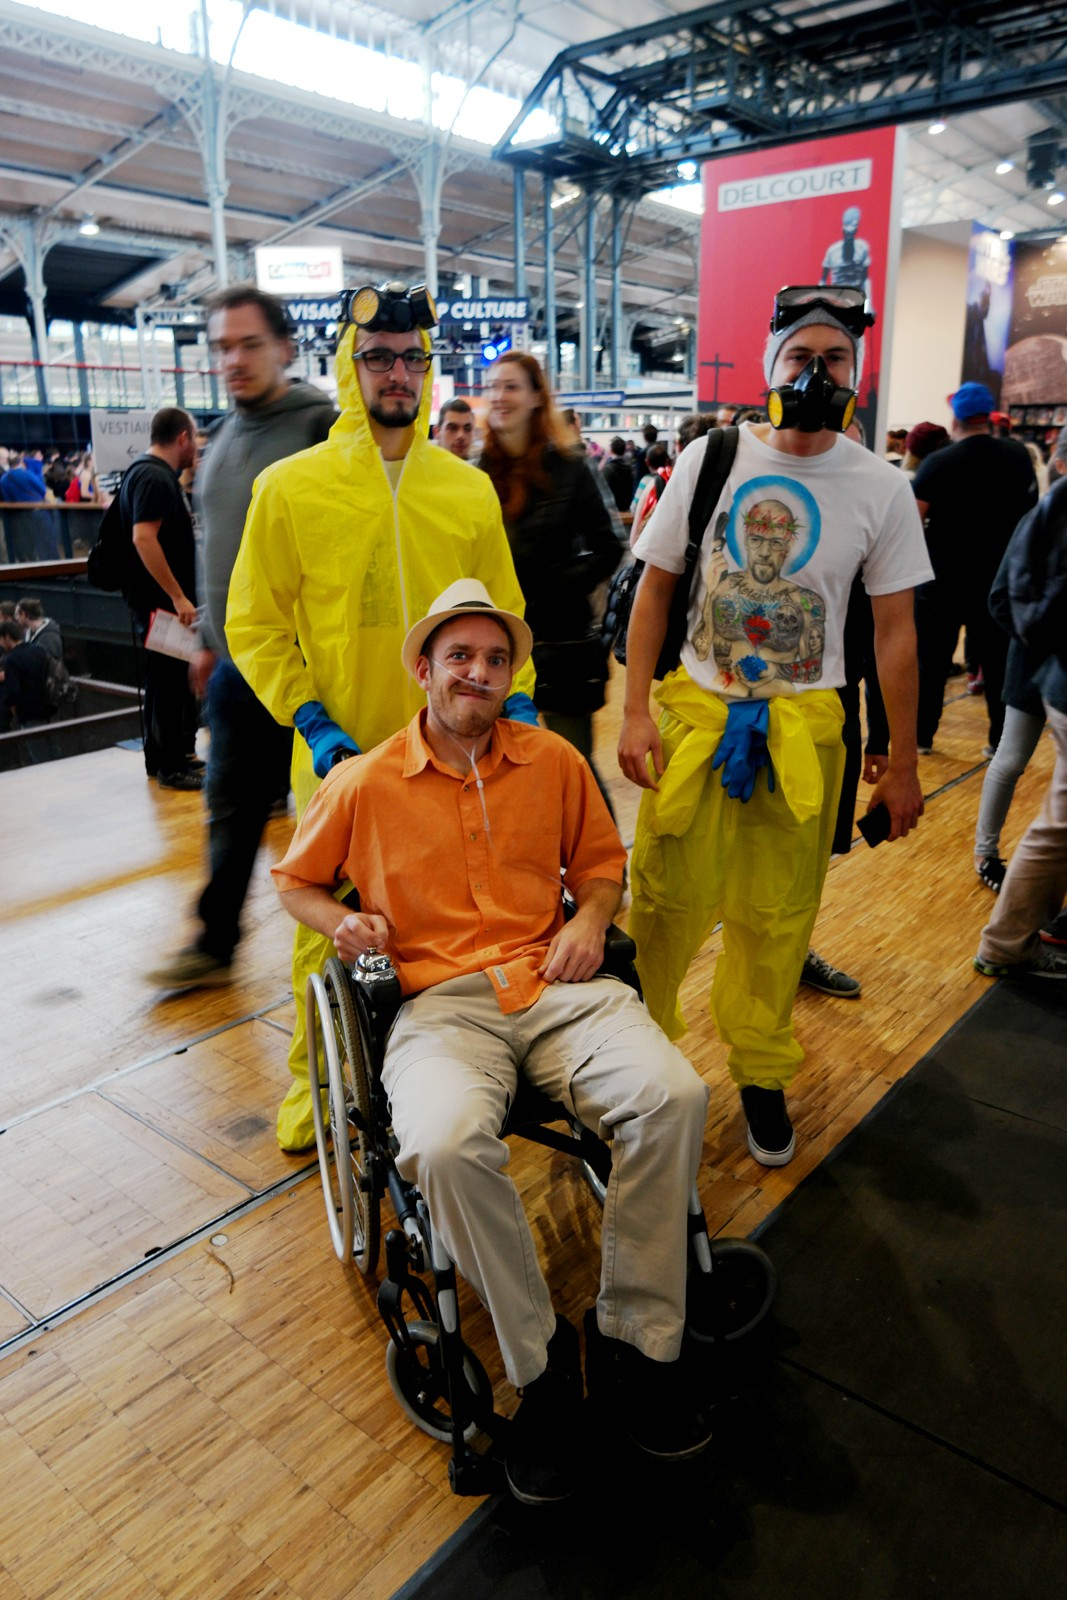 Breaking-Bad-funny-team-Comic-Con-Paris-cosplay-festival-2015-Grande-Halle-de-la-Villette-photo-united-states-of-paris-blog